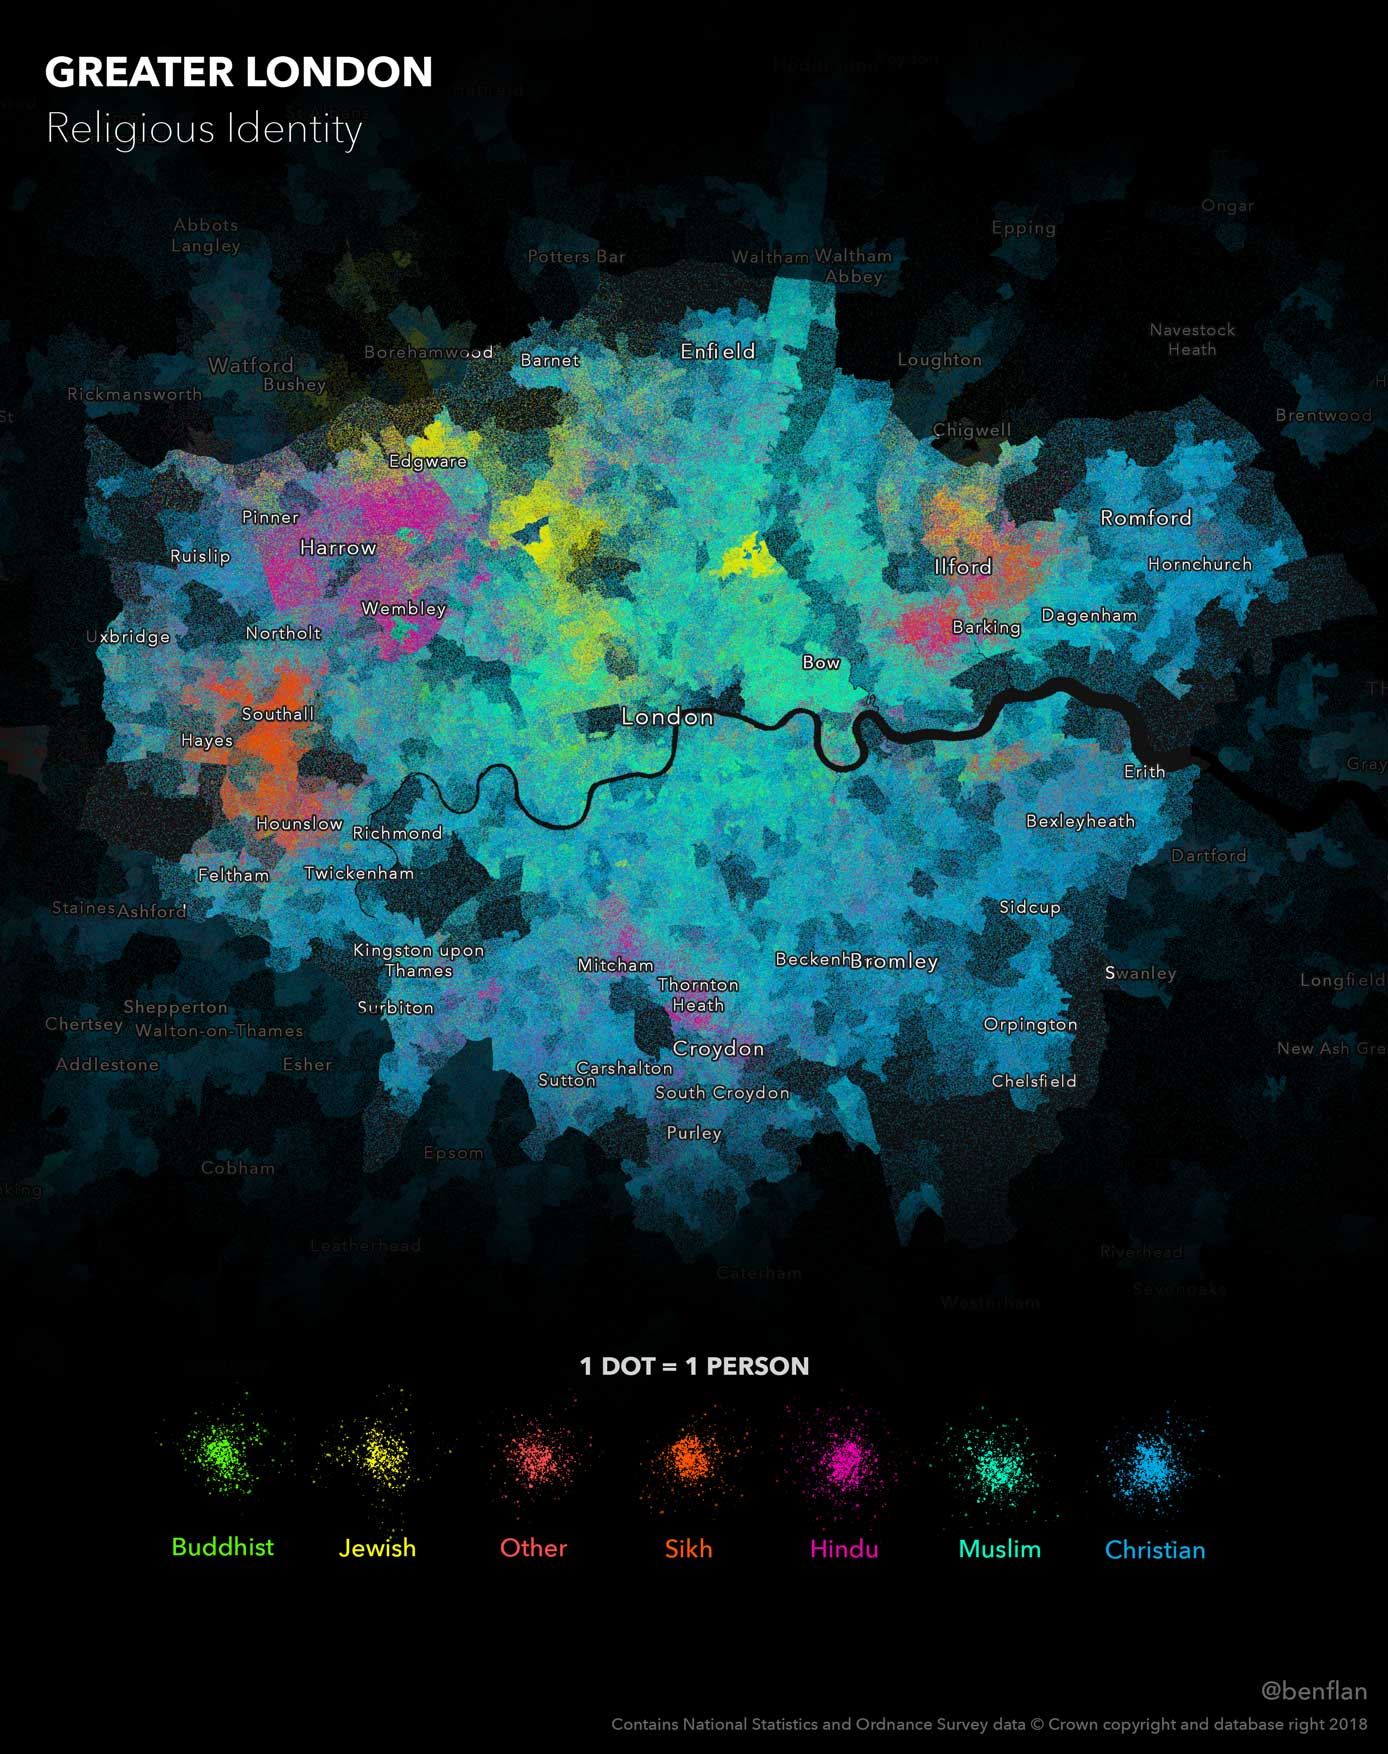 Religious identity across Greater London